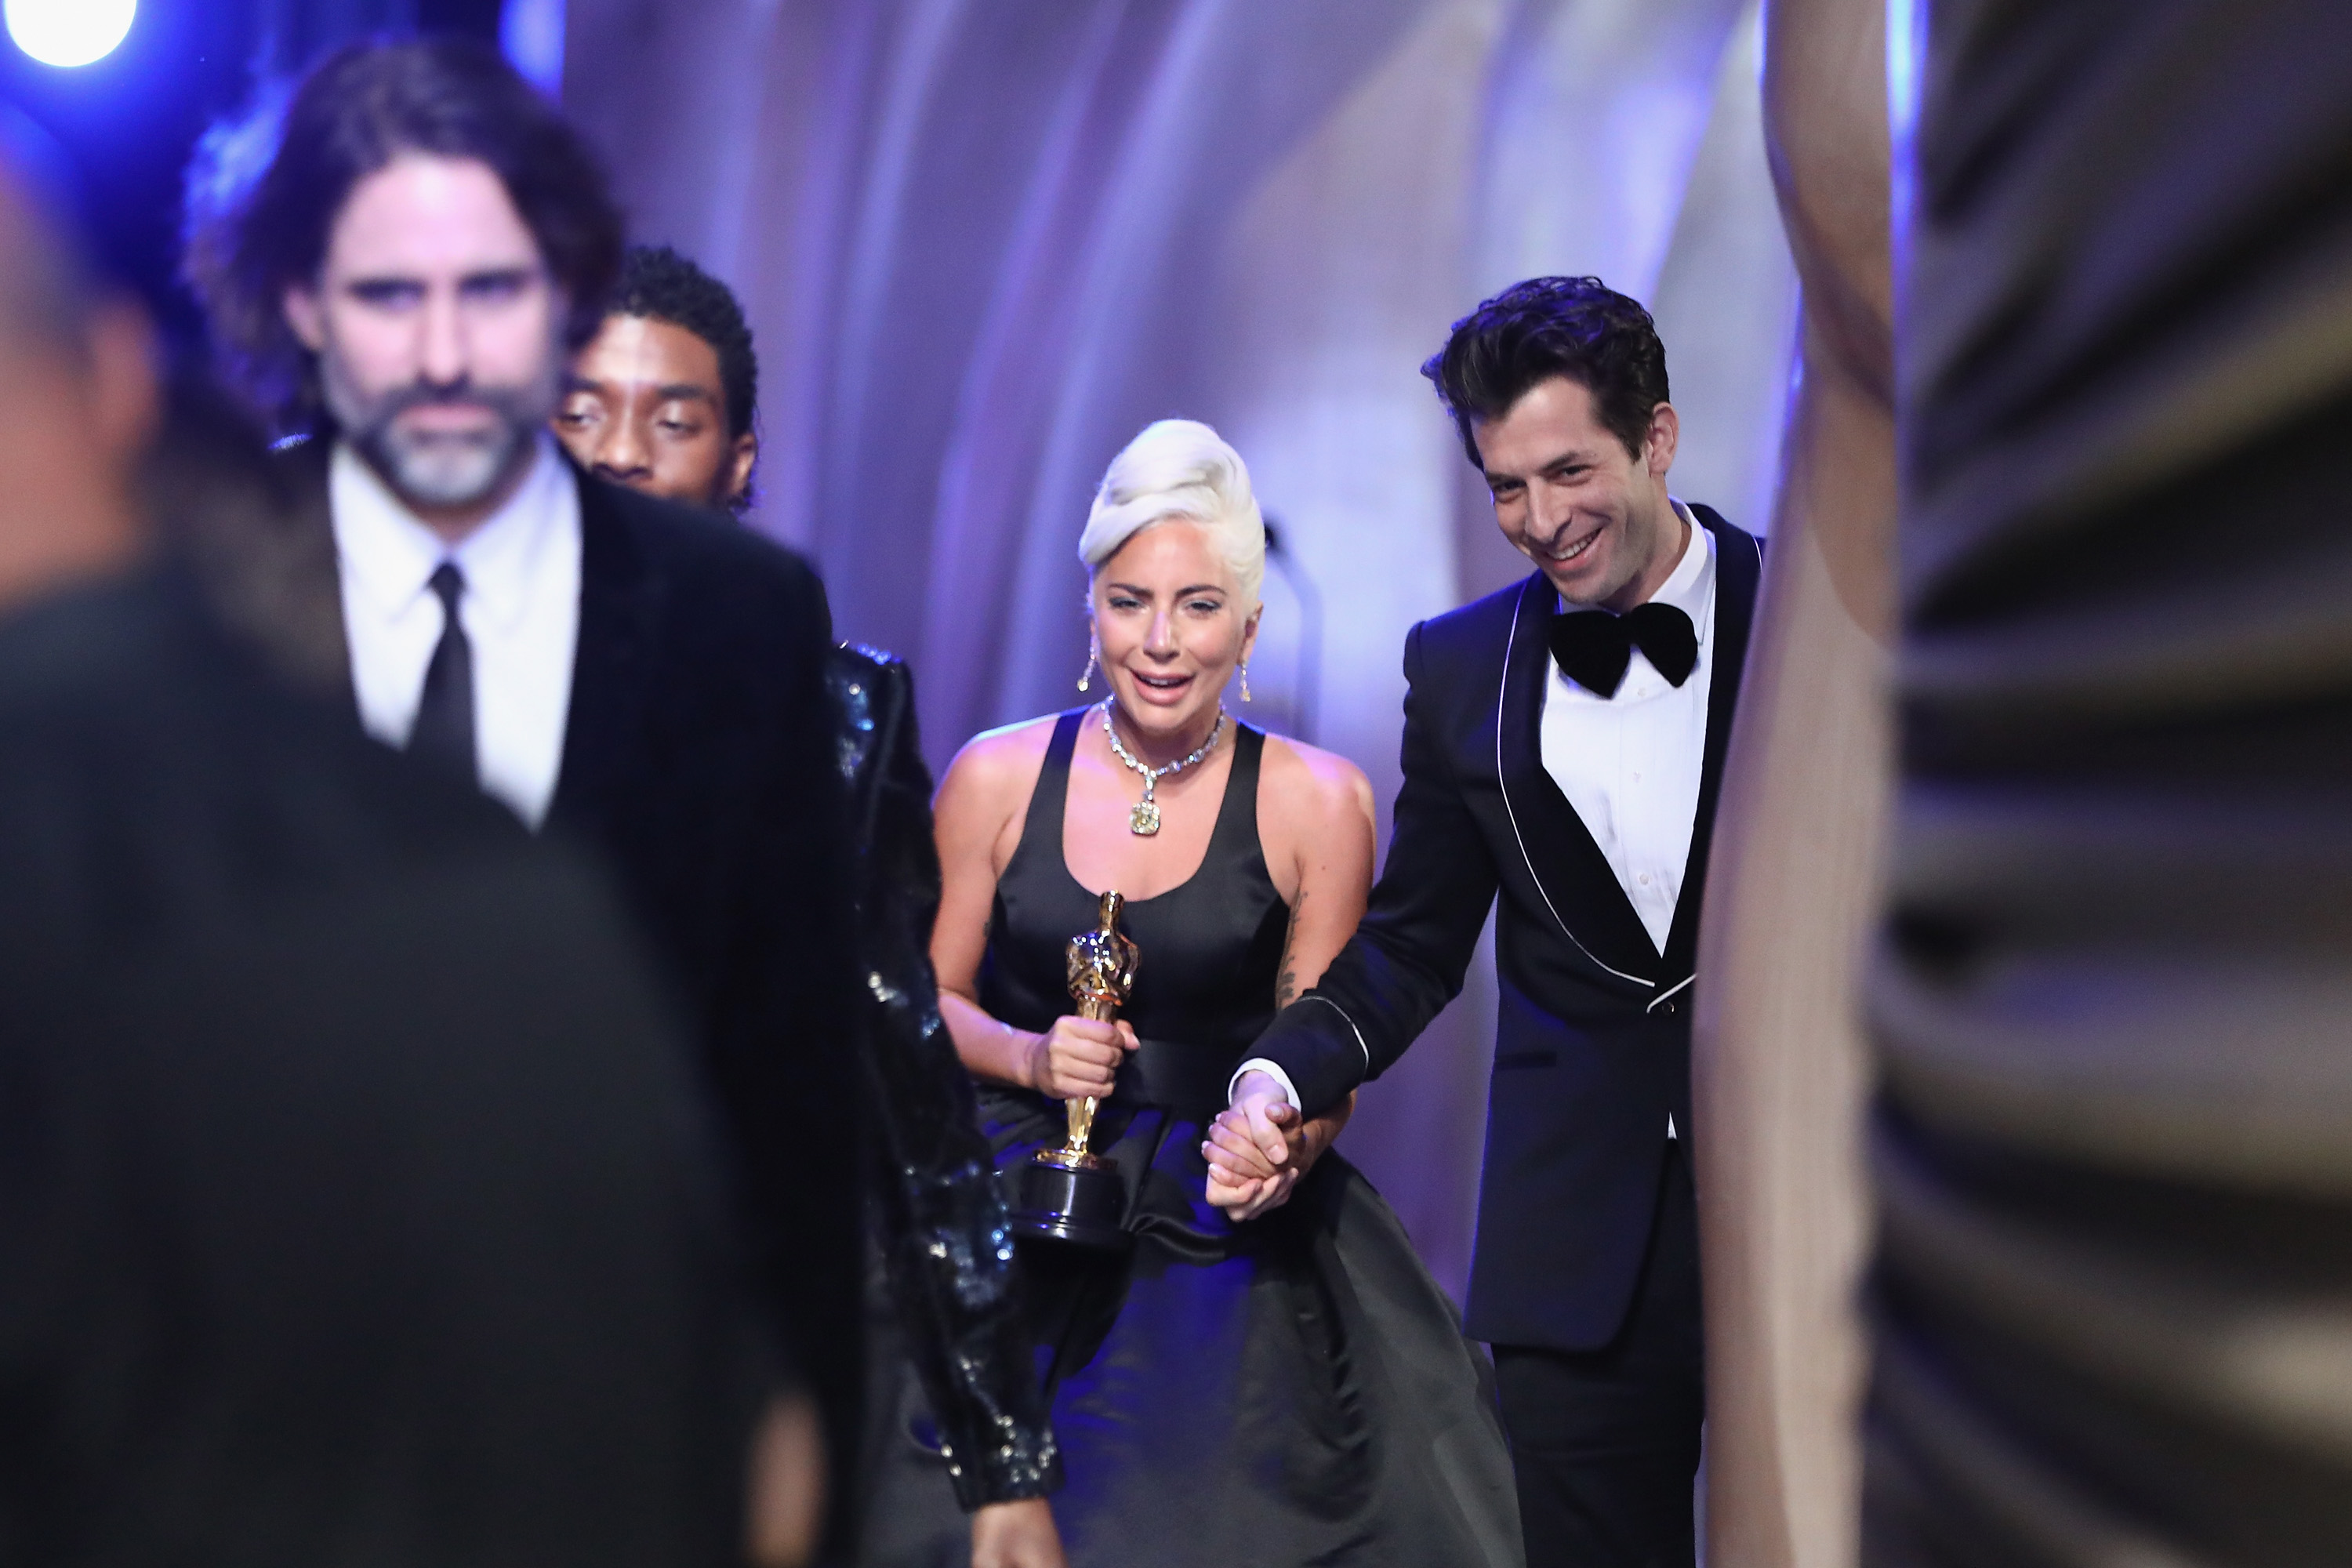 Lady Gaga and Mark Ronson after winning Best Original Song at the Oscars.